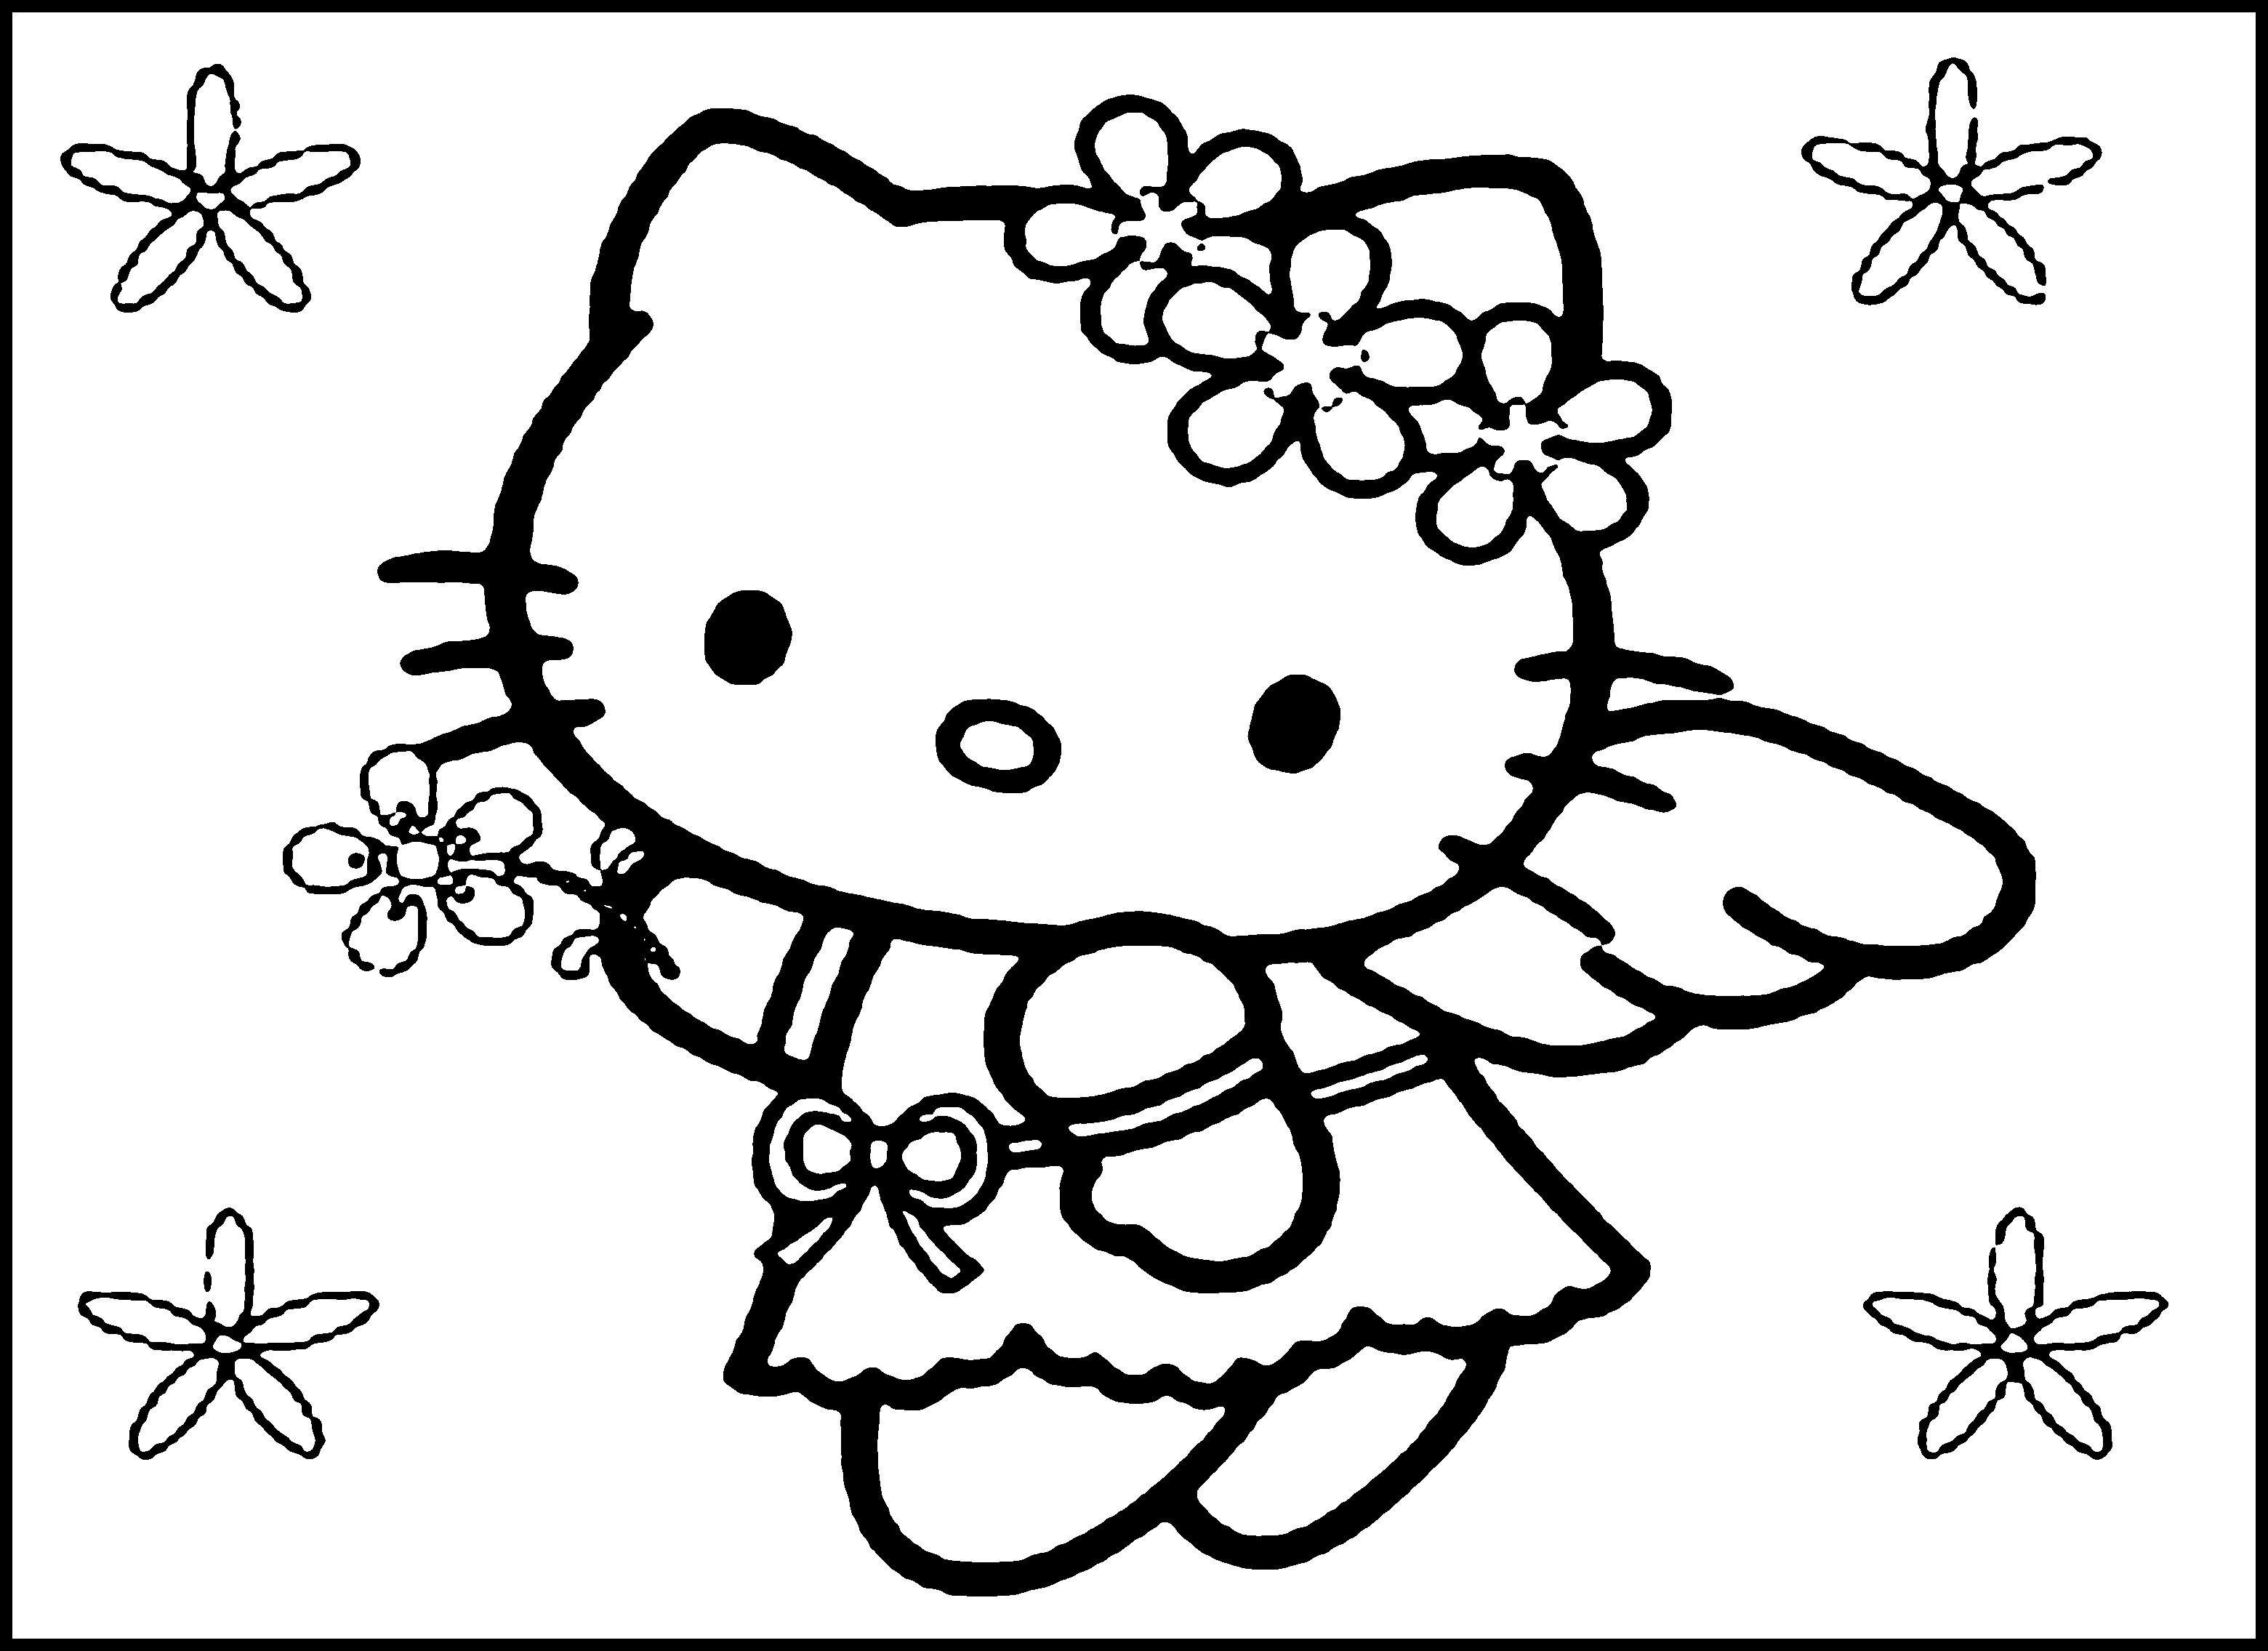 3120x2271 Hello Kitty Nerd Coloring Pages Coloring Page Fun